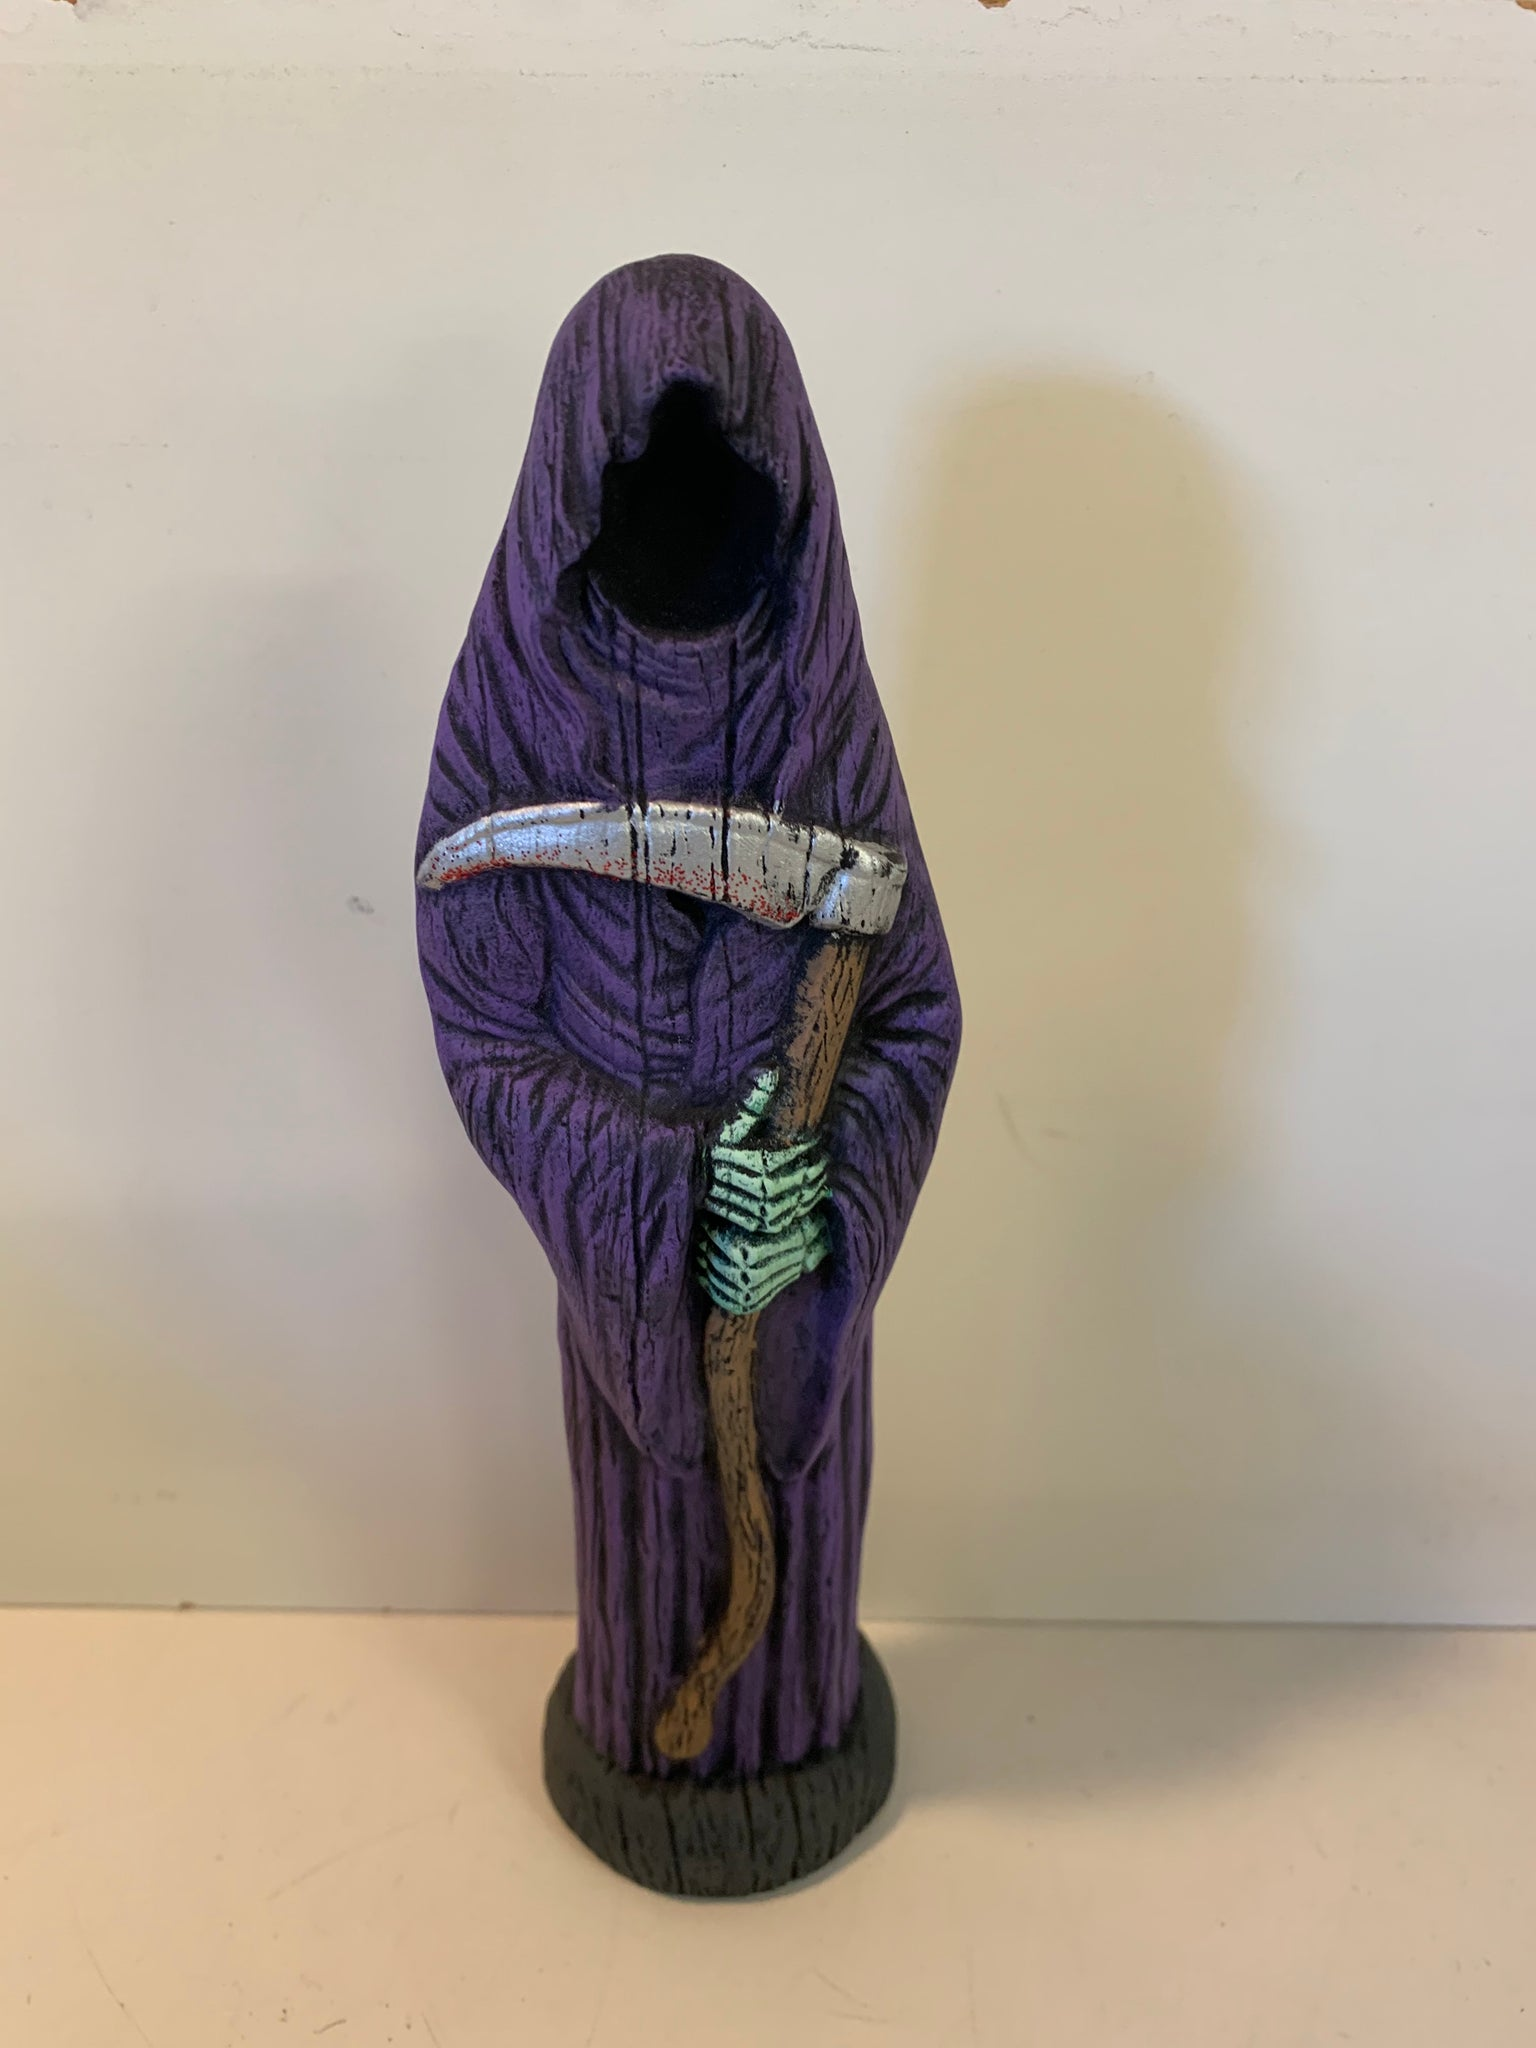 Vintage Home Made Ceramics Death Figurine Halloween